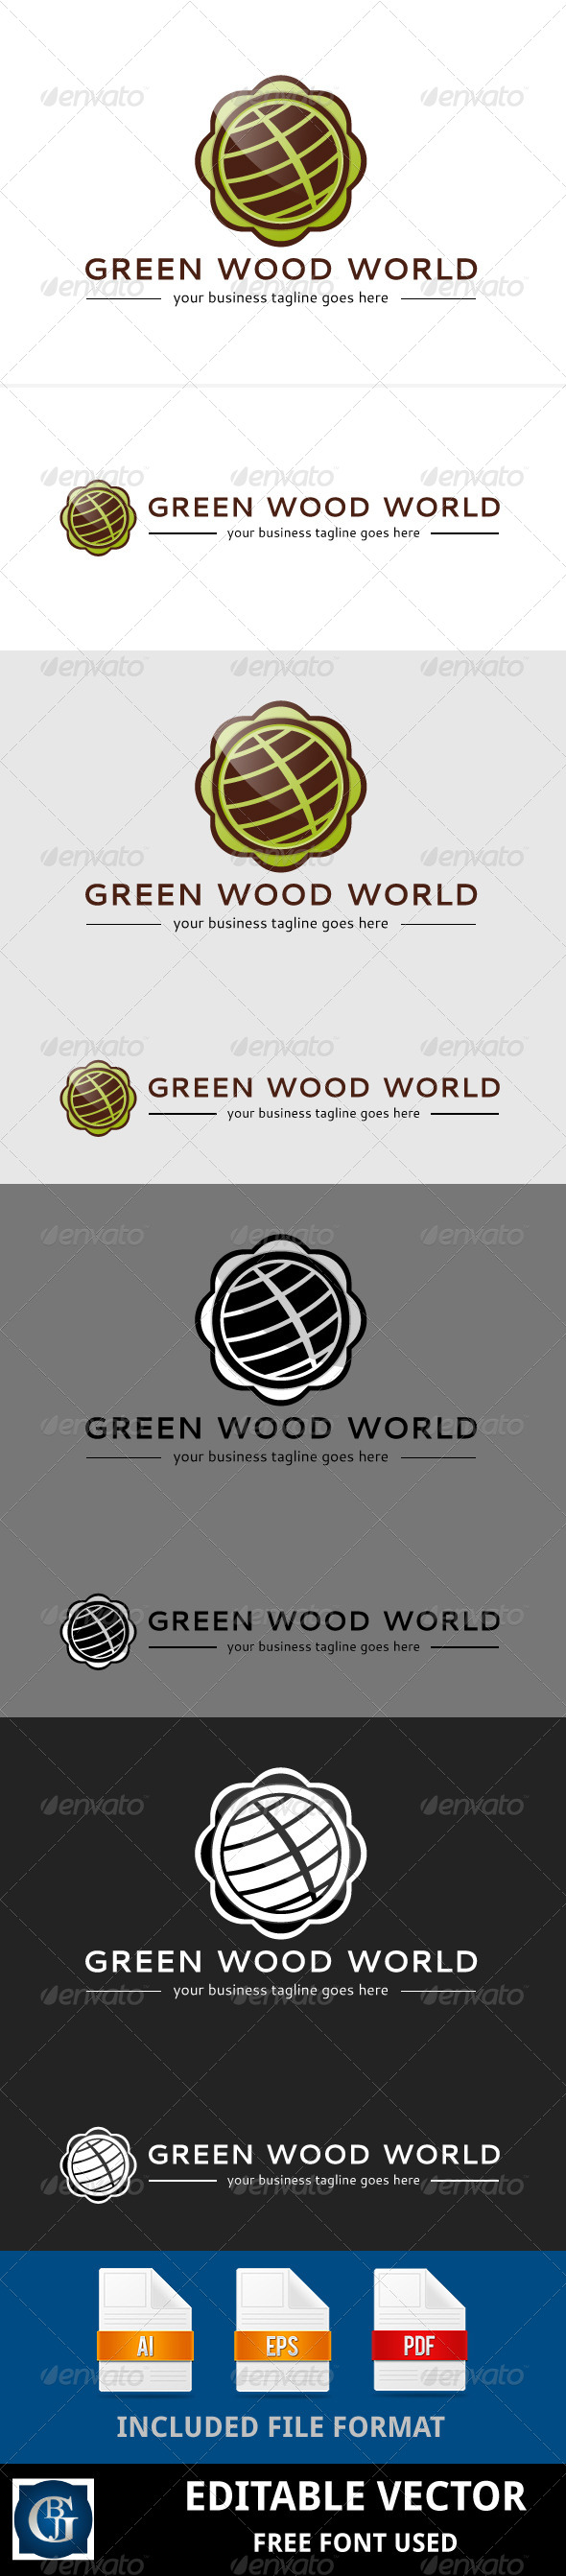 GraphicRiver Green Wood World Logo 5615150